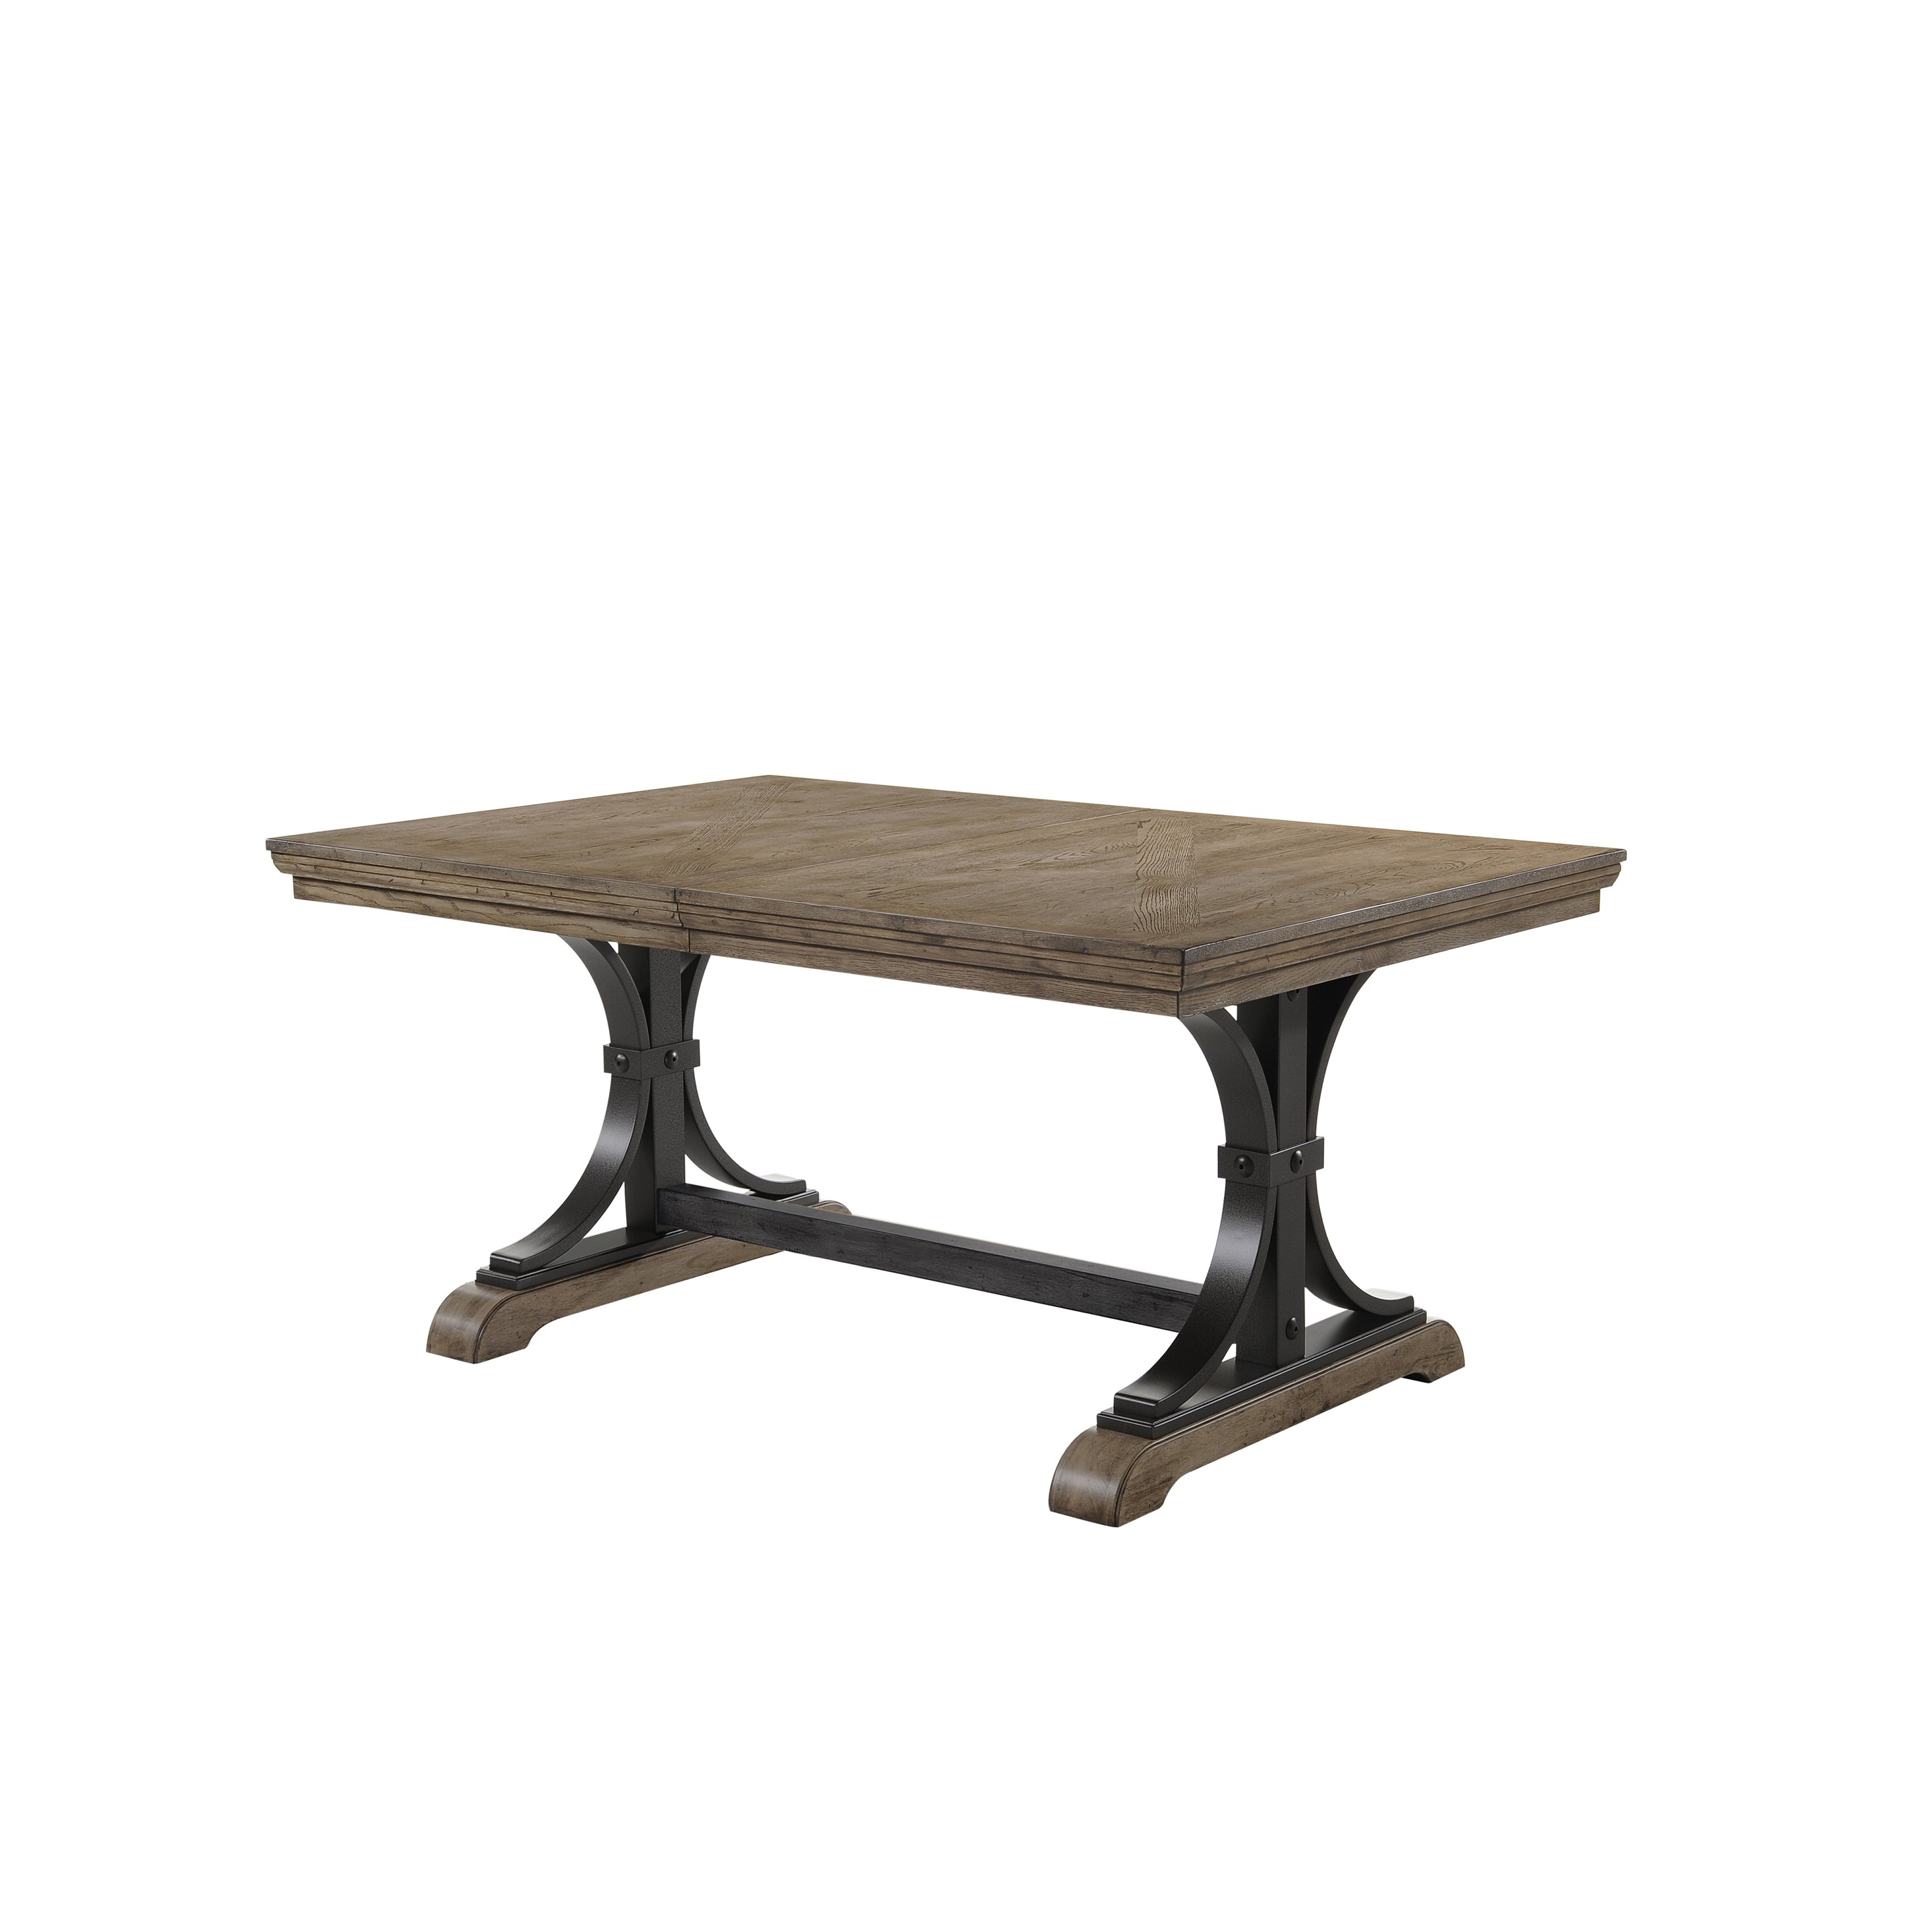 Shop Birmingham 7 Piece Driftwood Finish Table With Nail Head Chairs Dining  Set   Free Shipping Today   Overstock.com   16685642